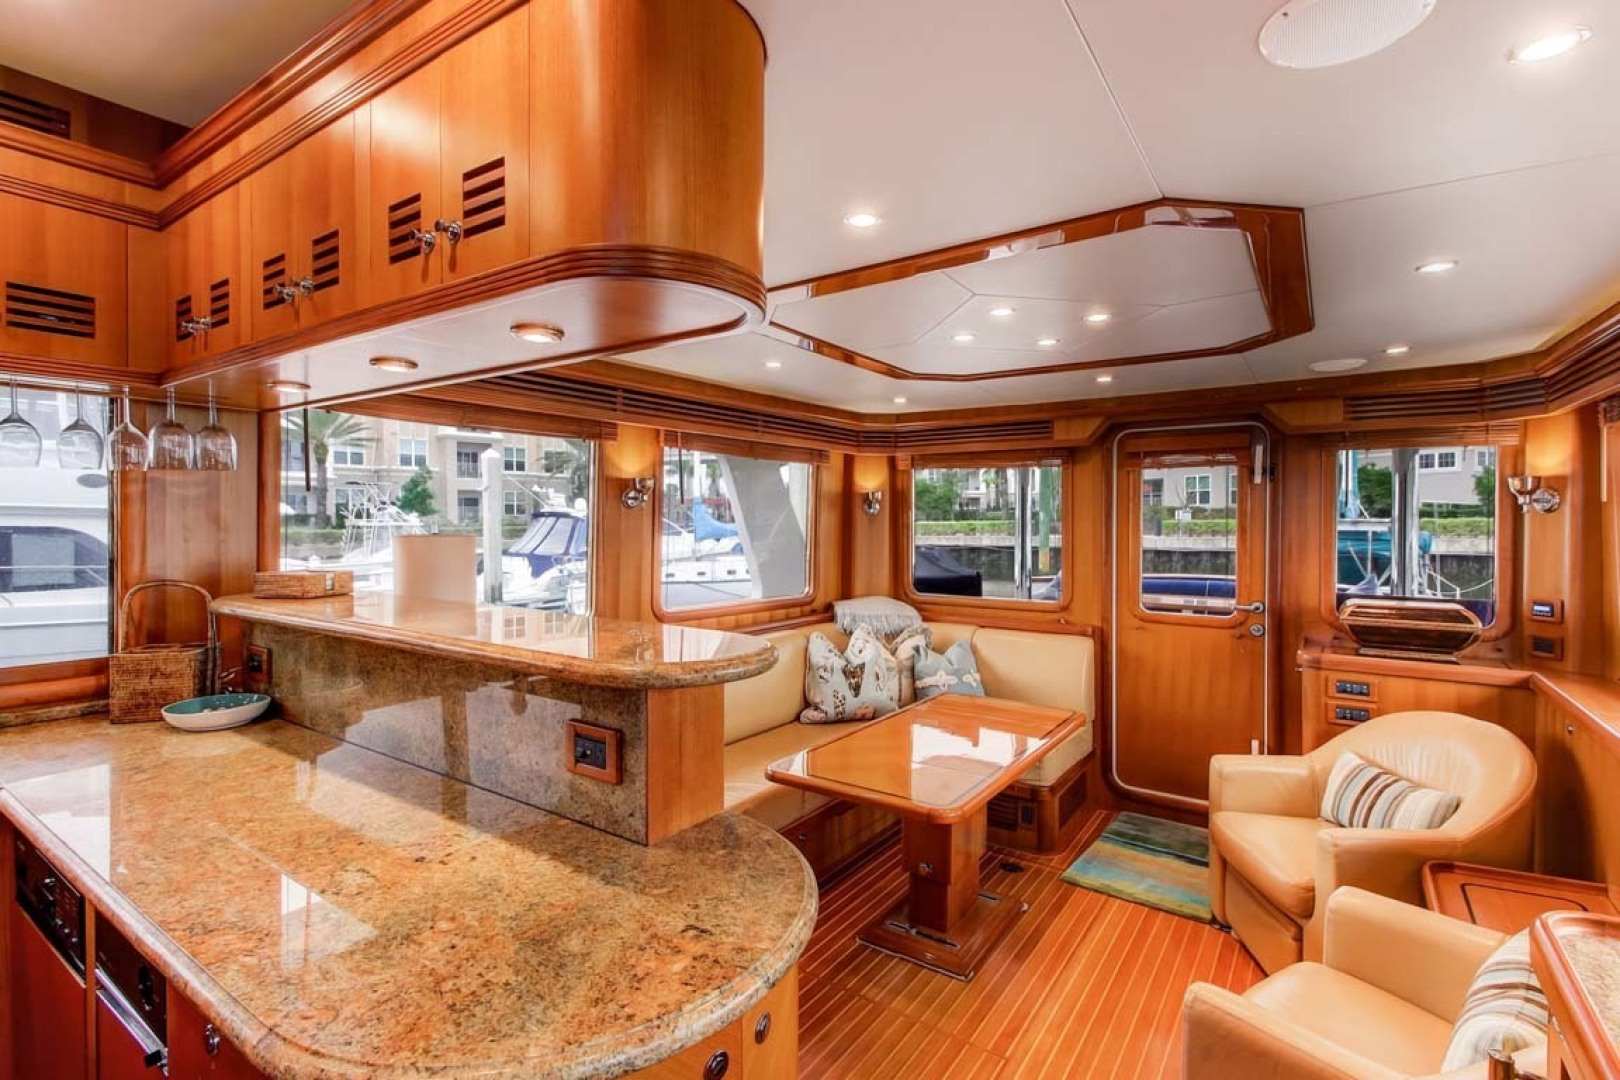 Selene-60 Ocean Trawler 2010-Gypsy Magic Jacksonville-Florida-United States-Salon And Galley-1346737 | Thumbnail